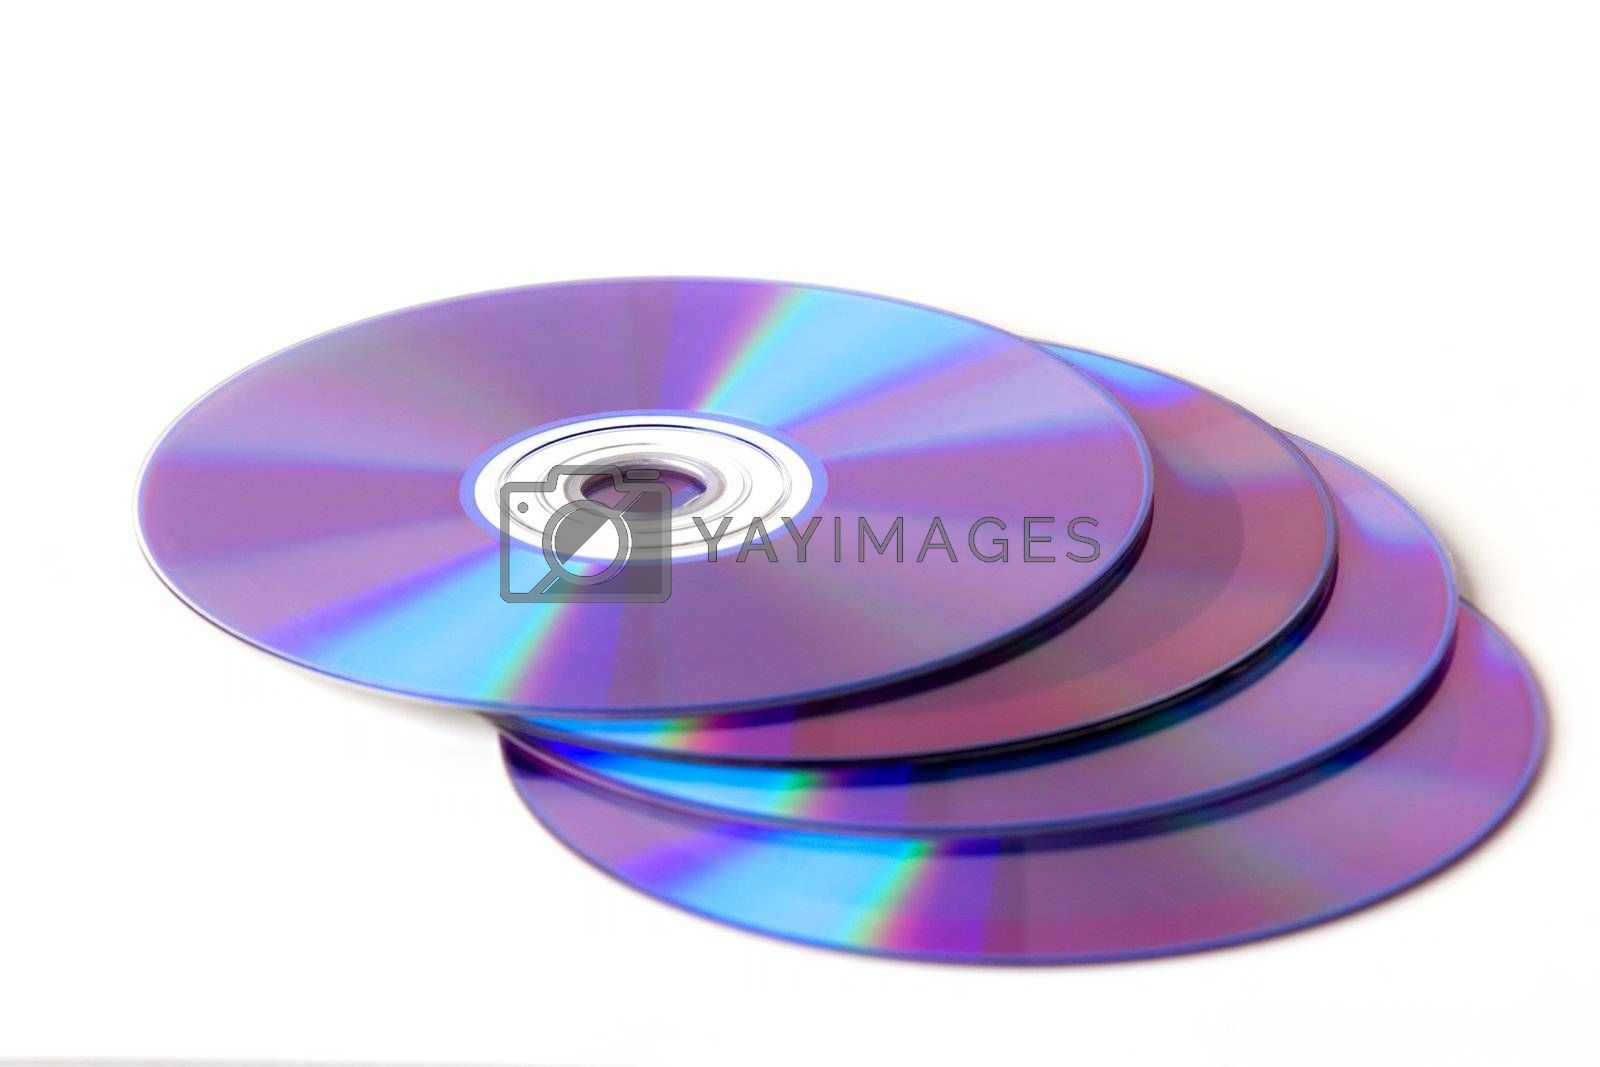 DVDs on white background